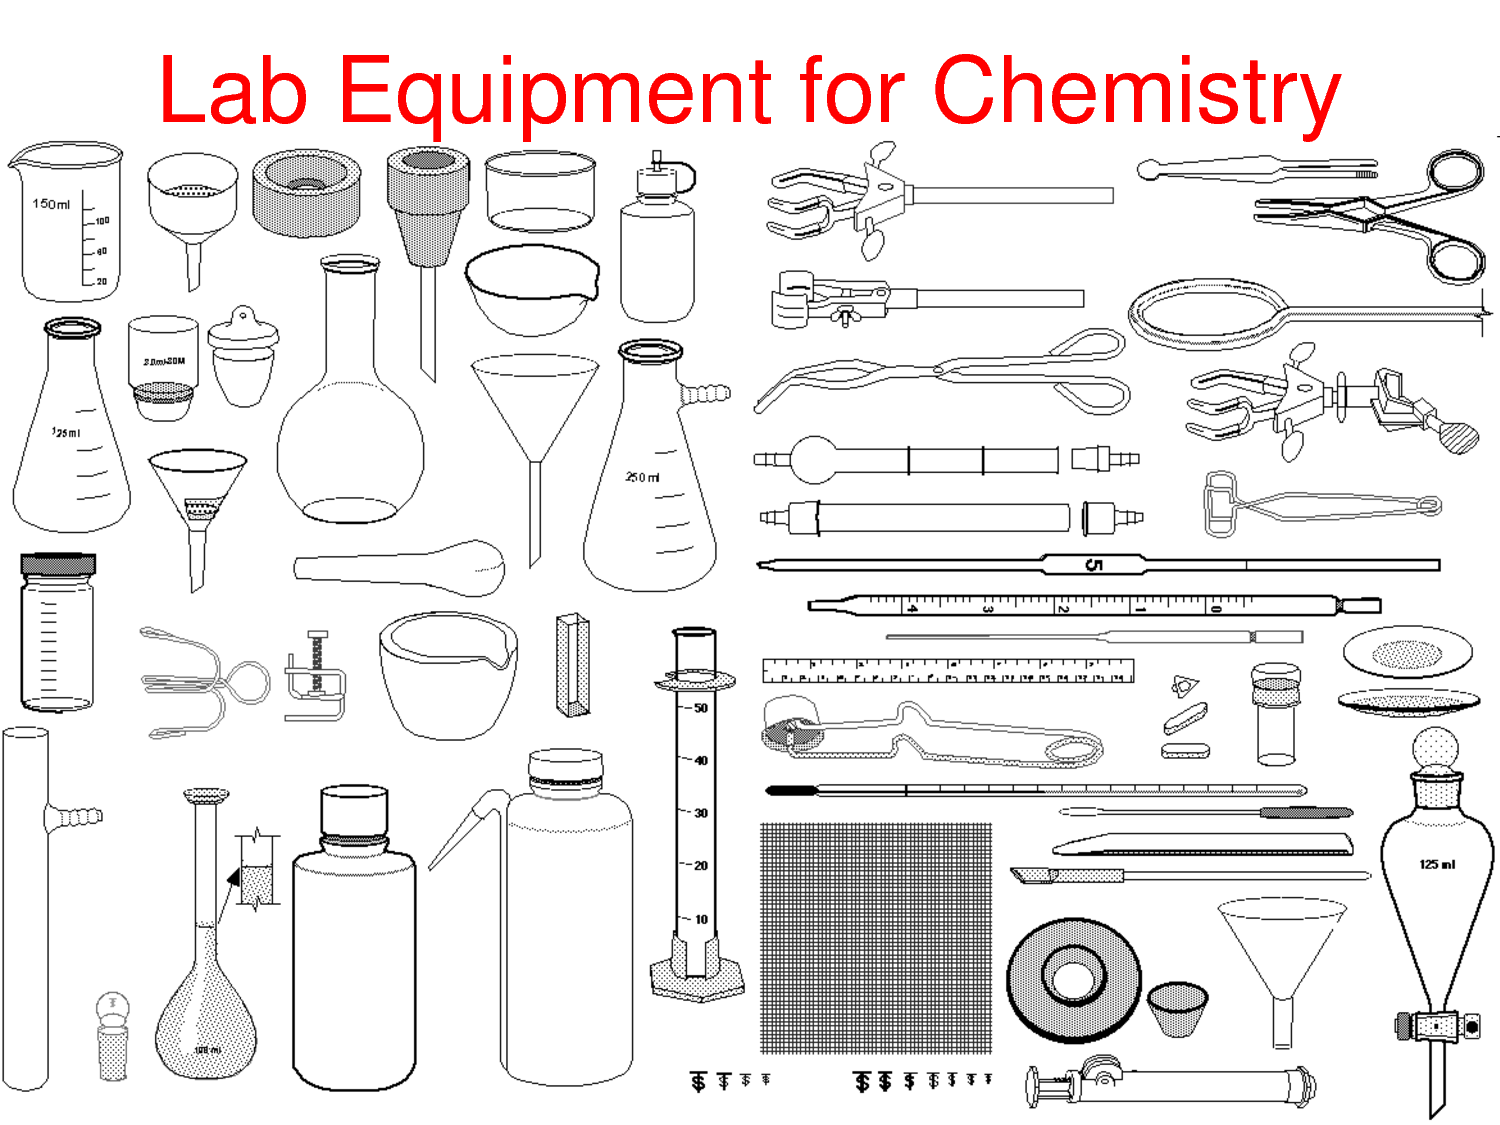 chemistry lab equipment bing images chemistry pinterest lab equipment chemistry and. Black Bedroom Furniture Sets. Home Design Ideas